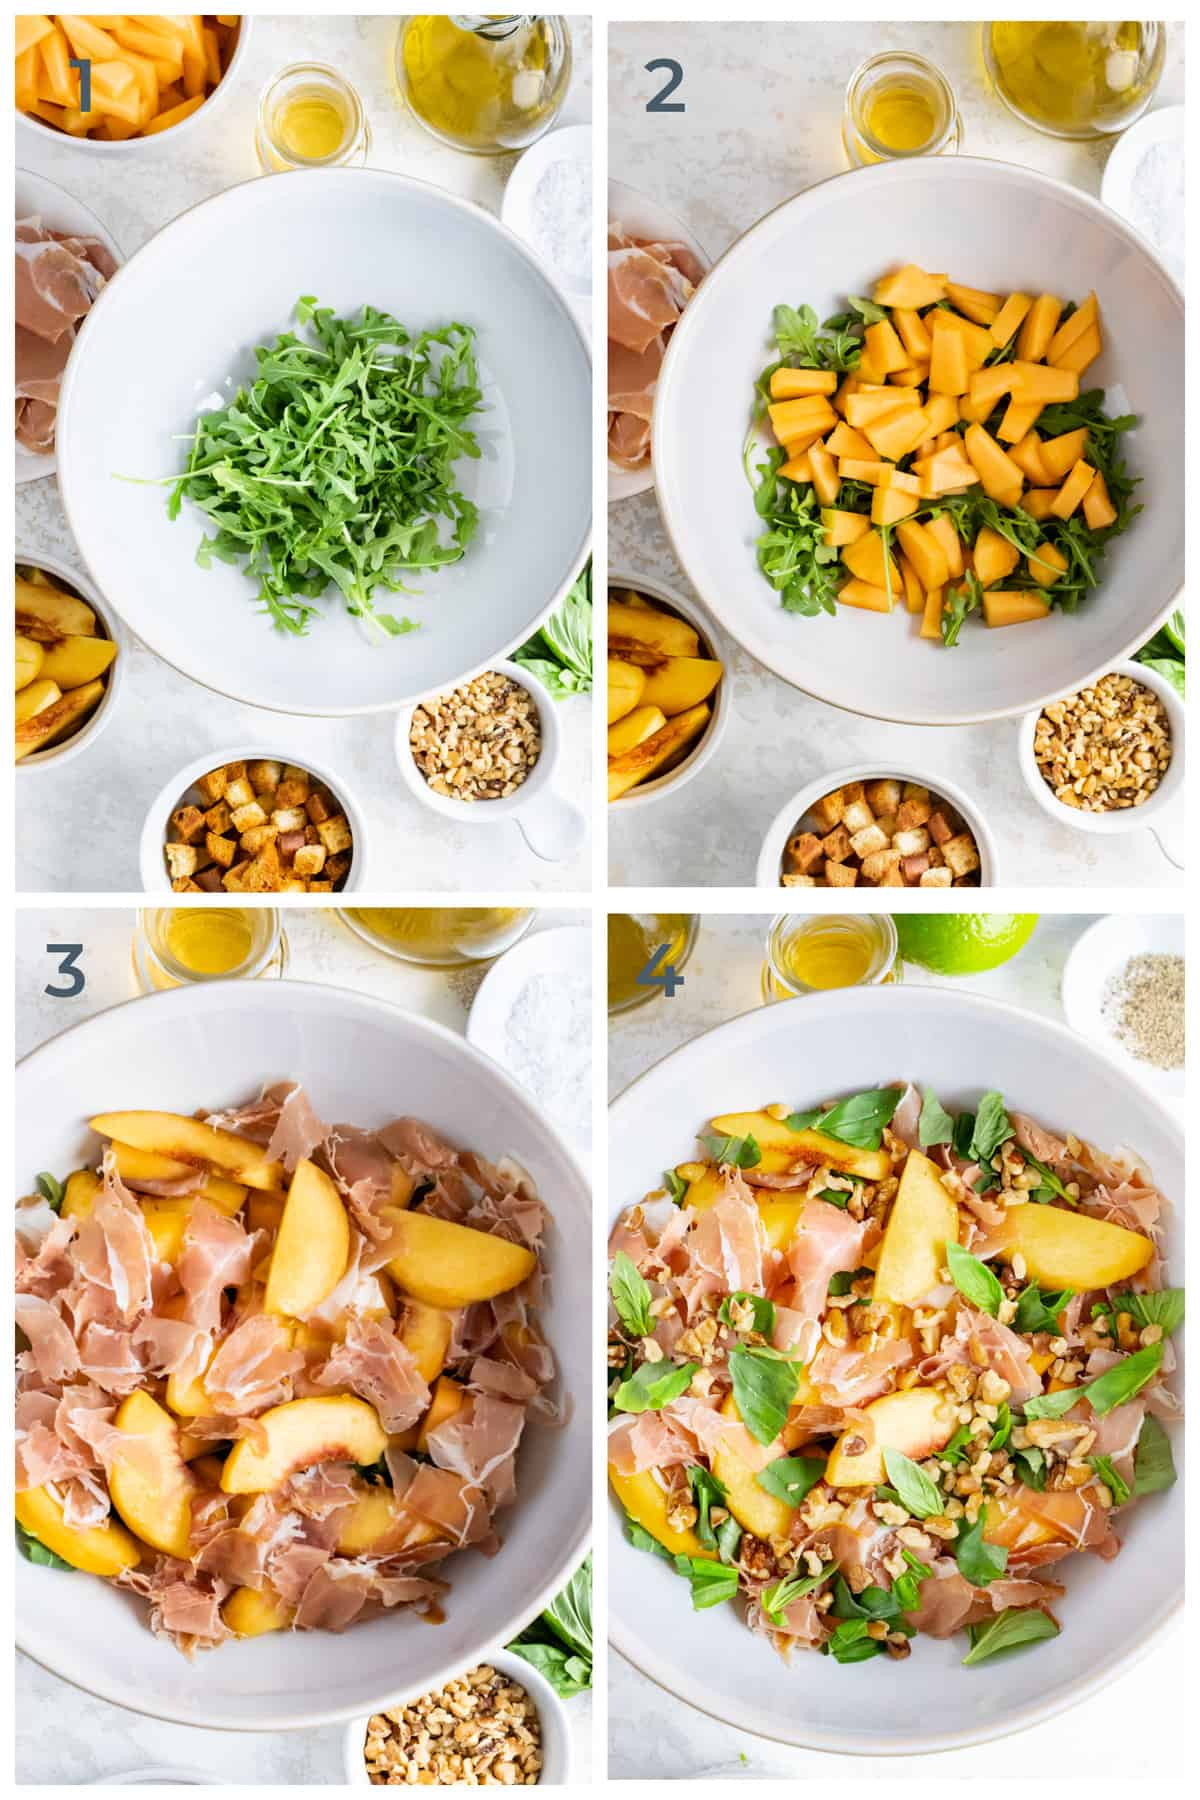 Step by step photos of a prosciutto, peach and melon salad being made